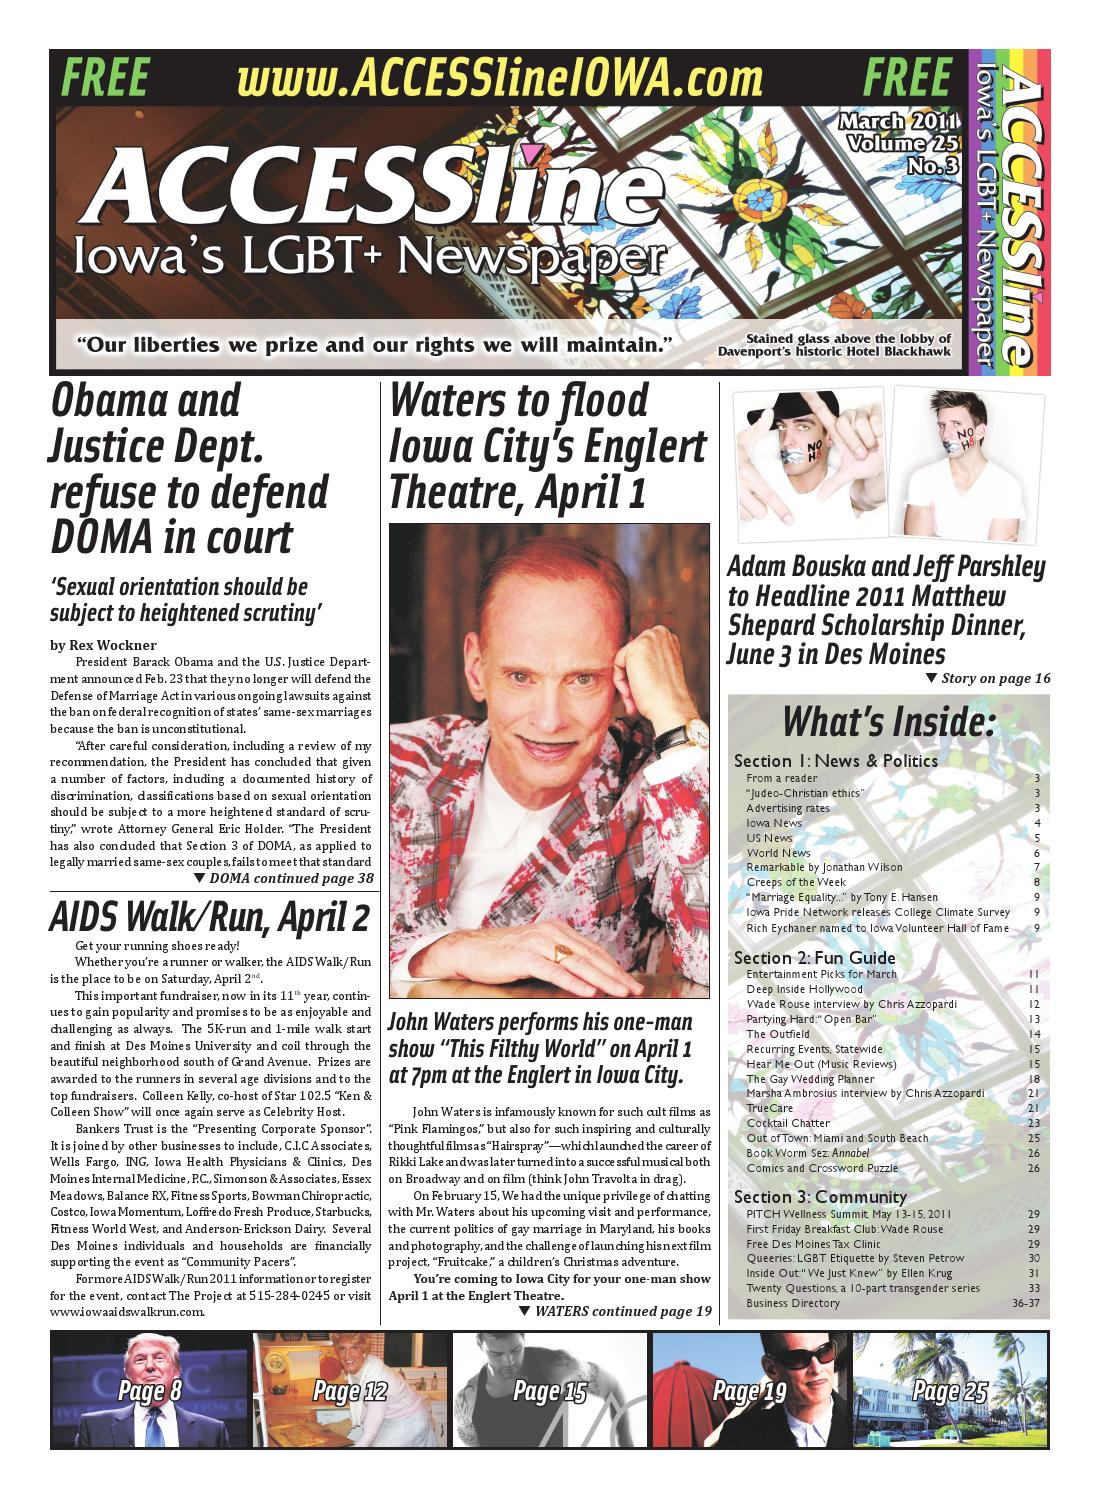 ACCESSline, Iowa's LGBT+ Newspaper, March 2011 Issue, Volume 25 No 3 by  ACCESSline - issuu